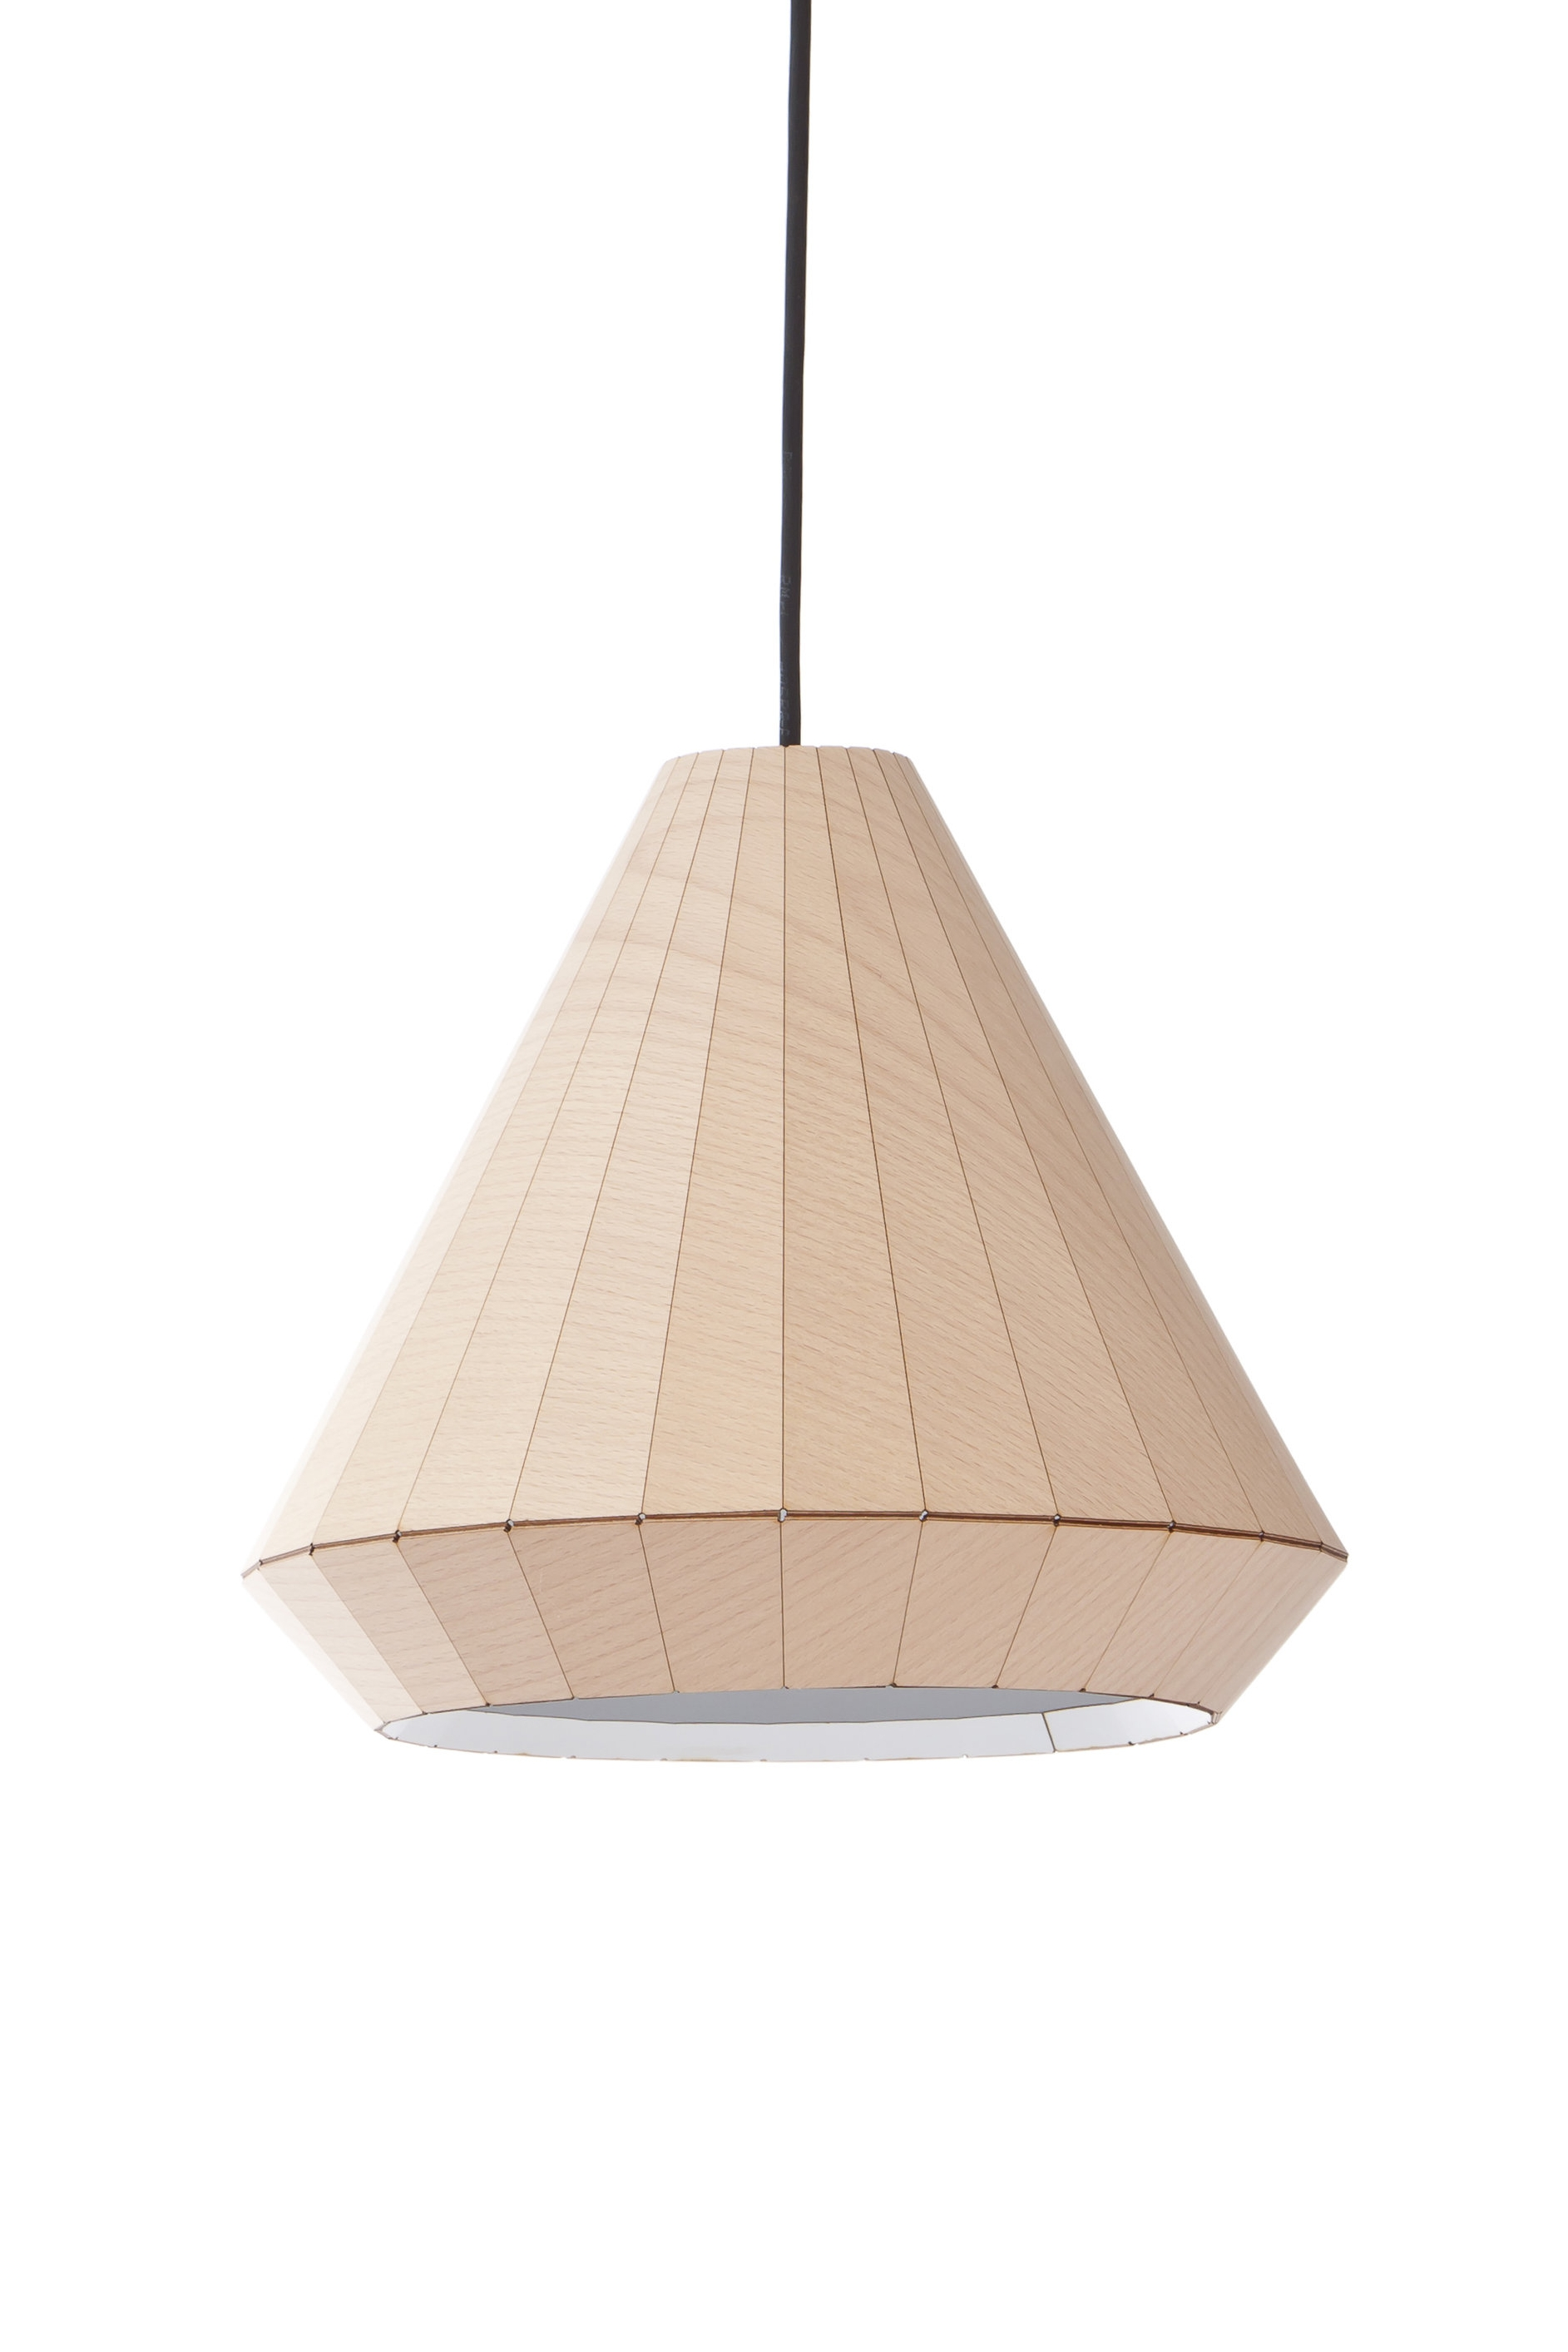 Vij5-Wooden-Light-03-2014-image-by-Vij5.jpeg